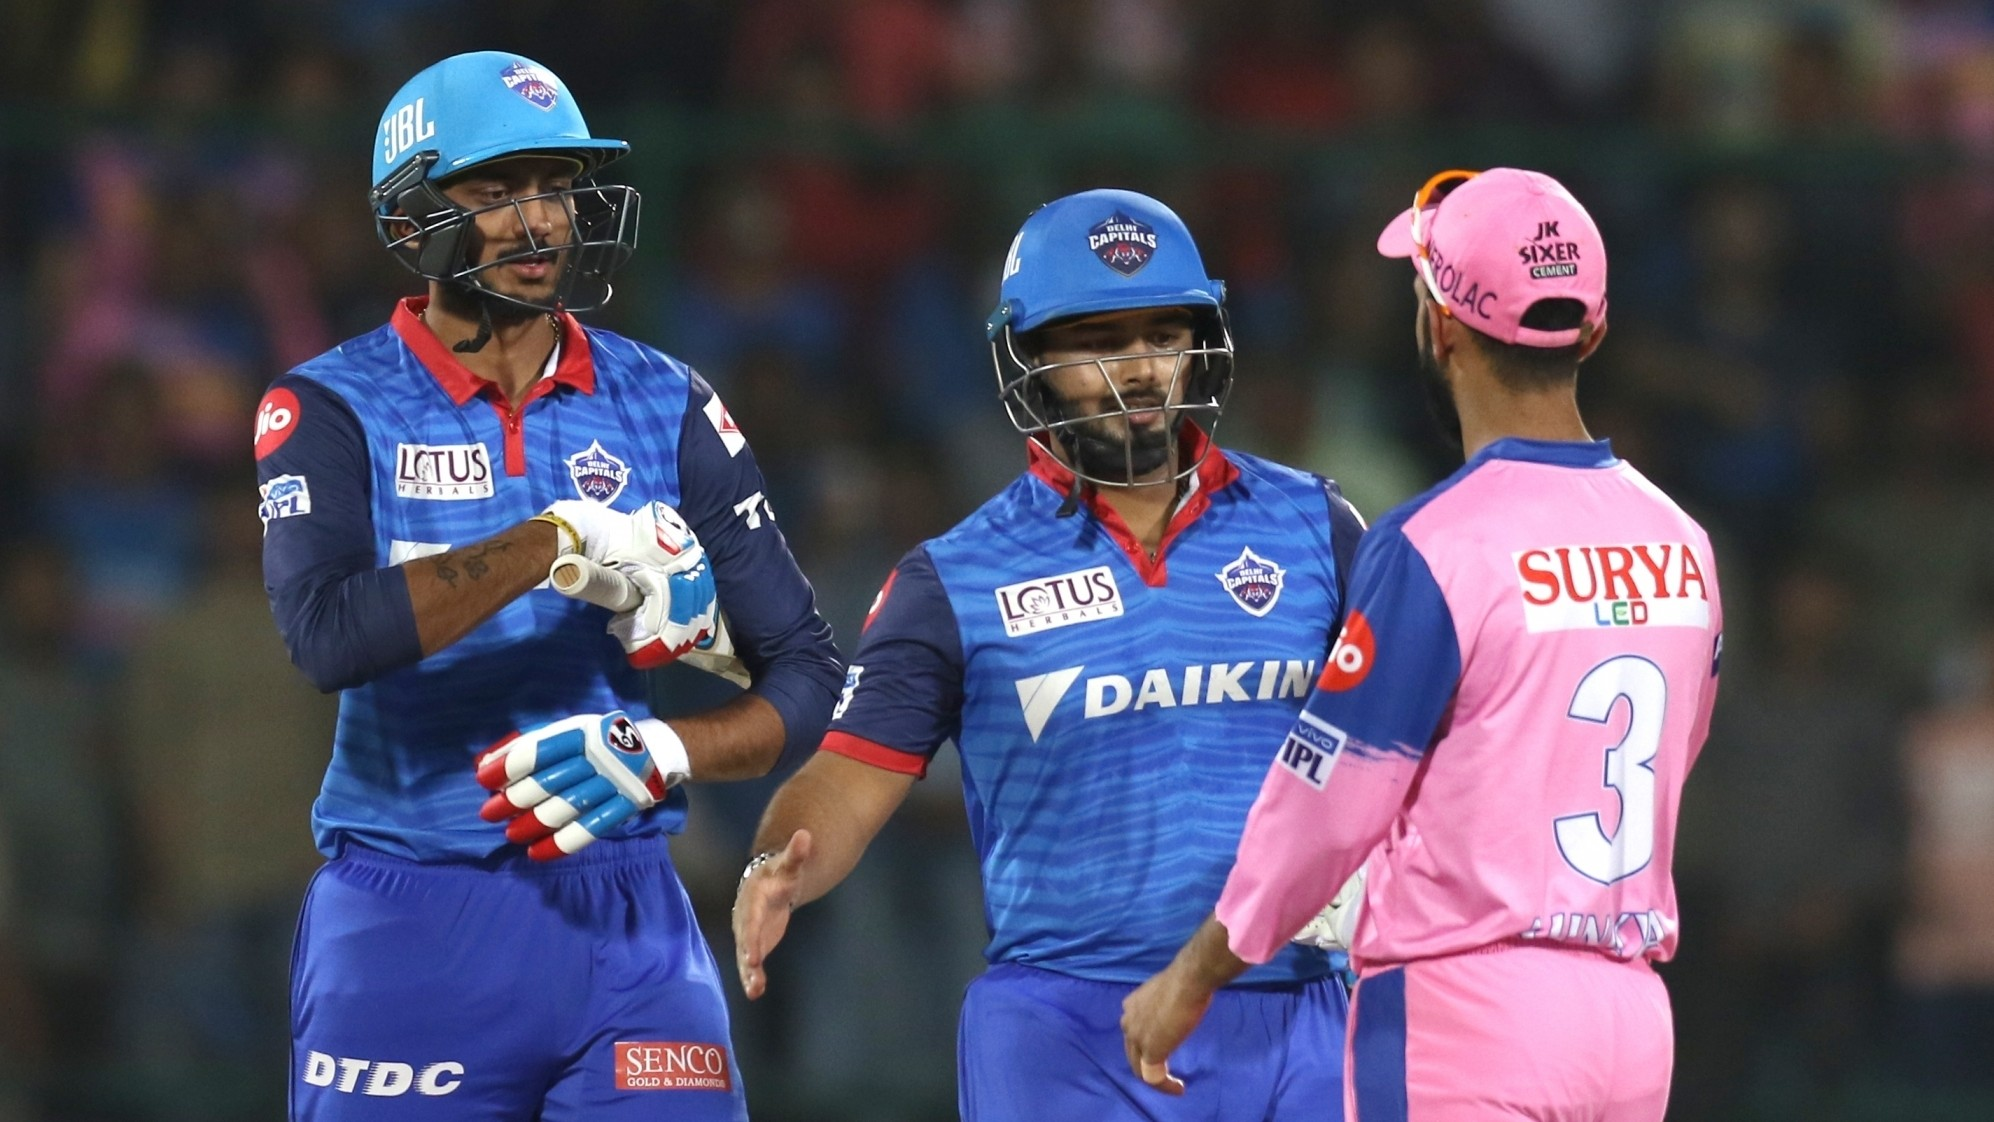 IPL 2019: Match 53, DC v RR - Statistical Highlights